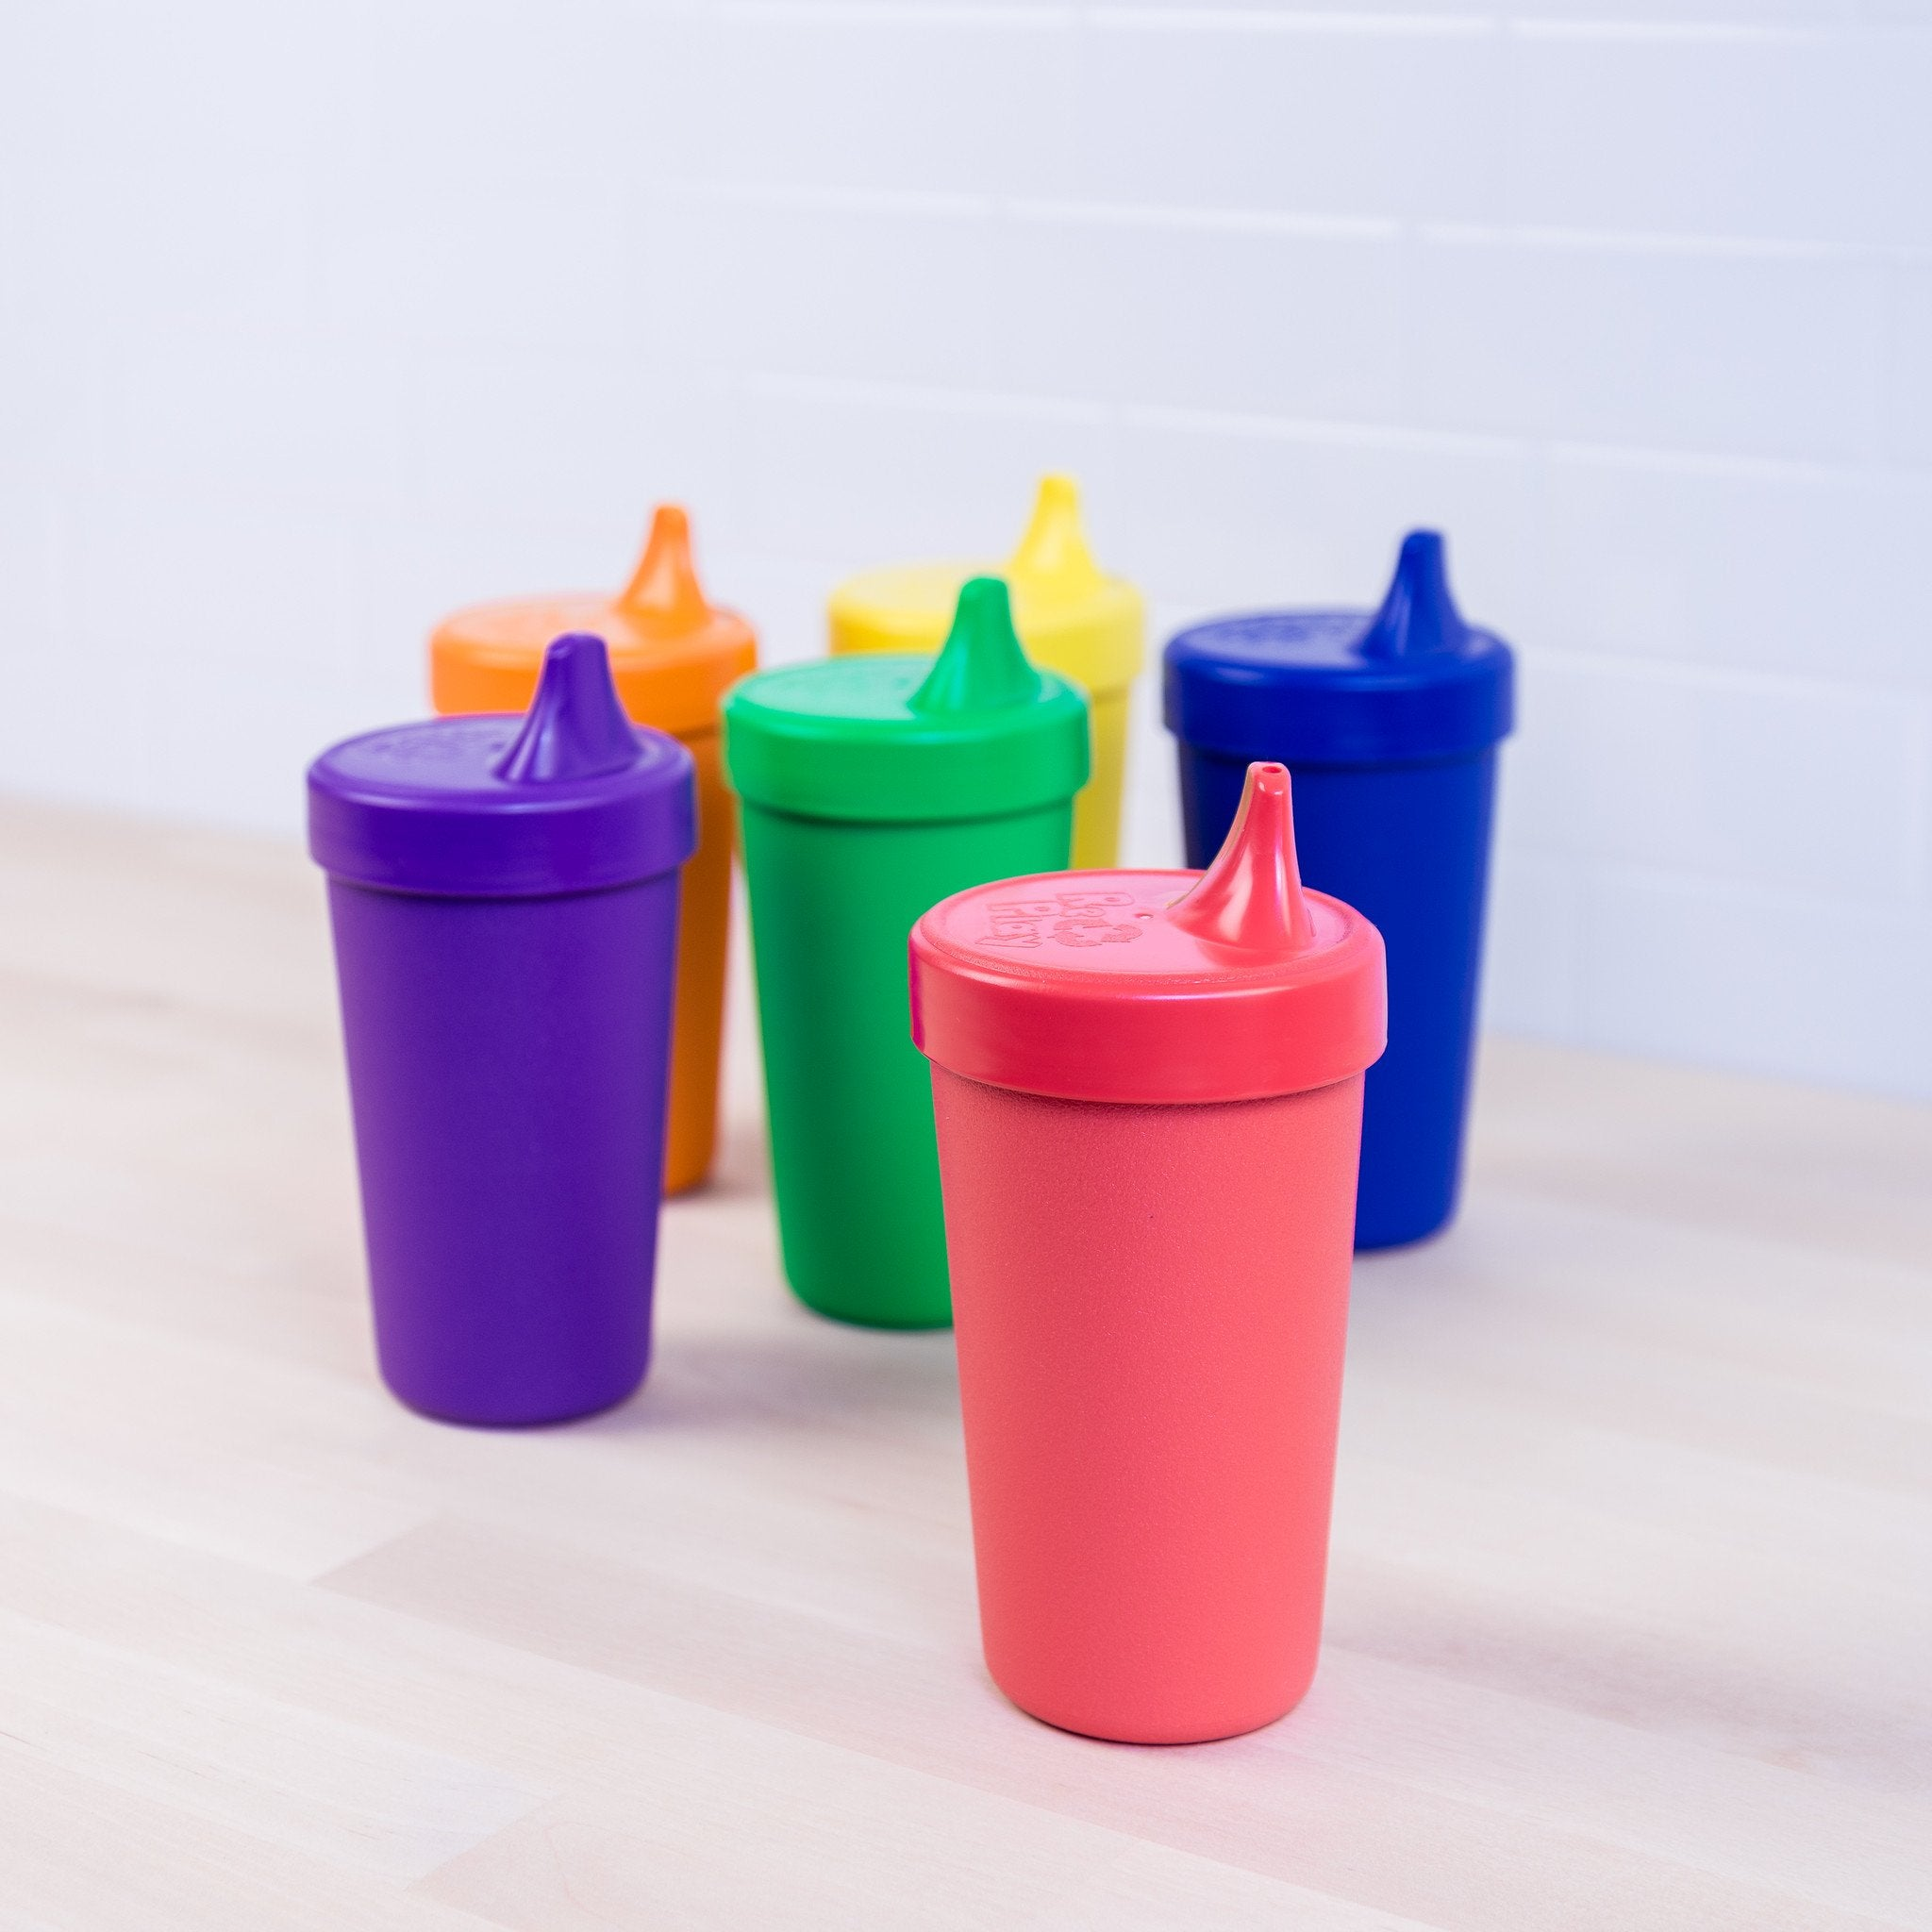 Replay 6 Piece Sets Crayon Box Replay Dinnerware at Little Earth Nest Eco Shop